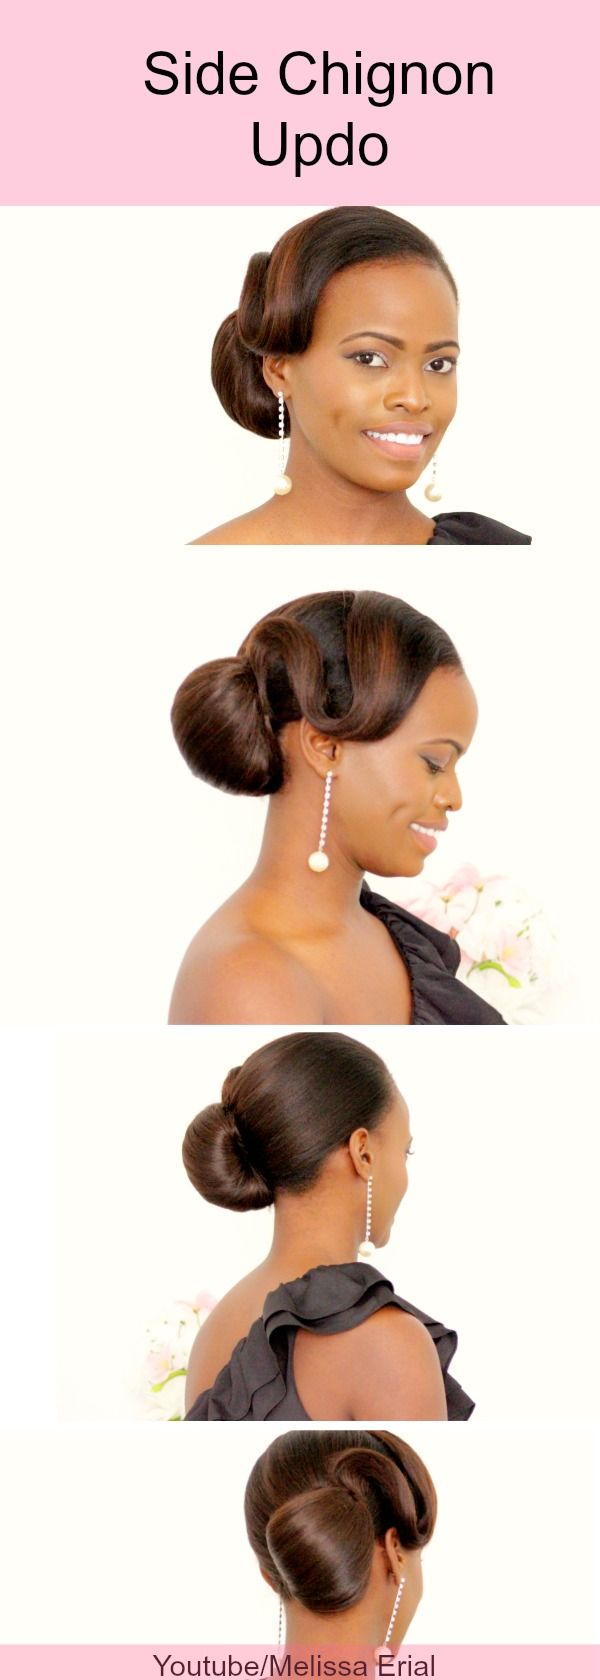 Side Chignon updo inspired by #tyrabanks